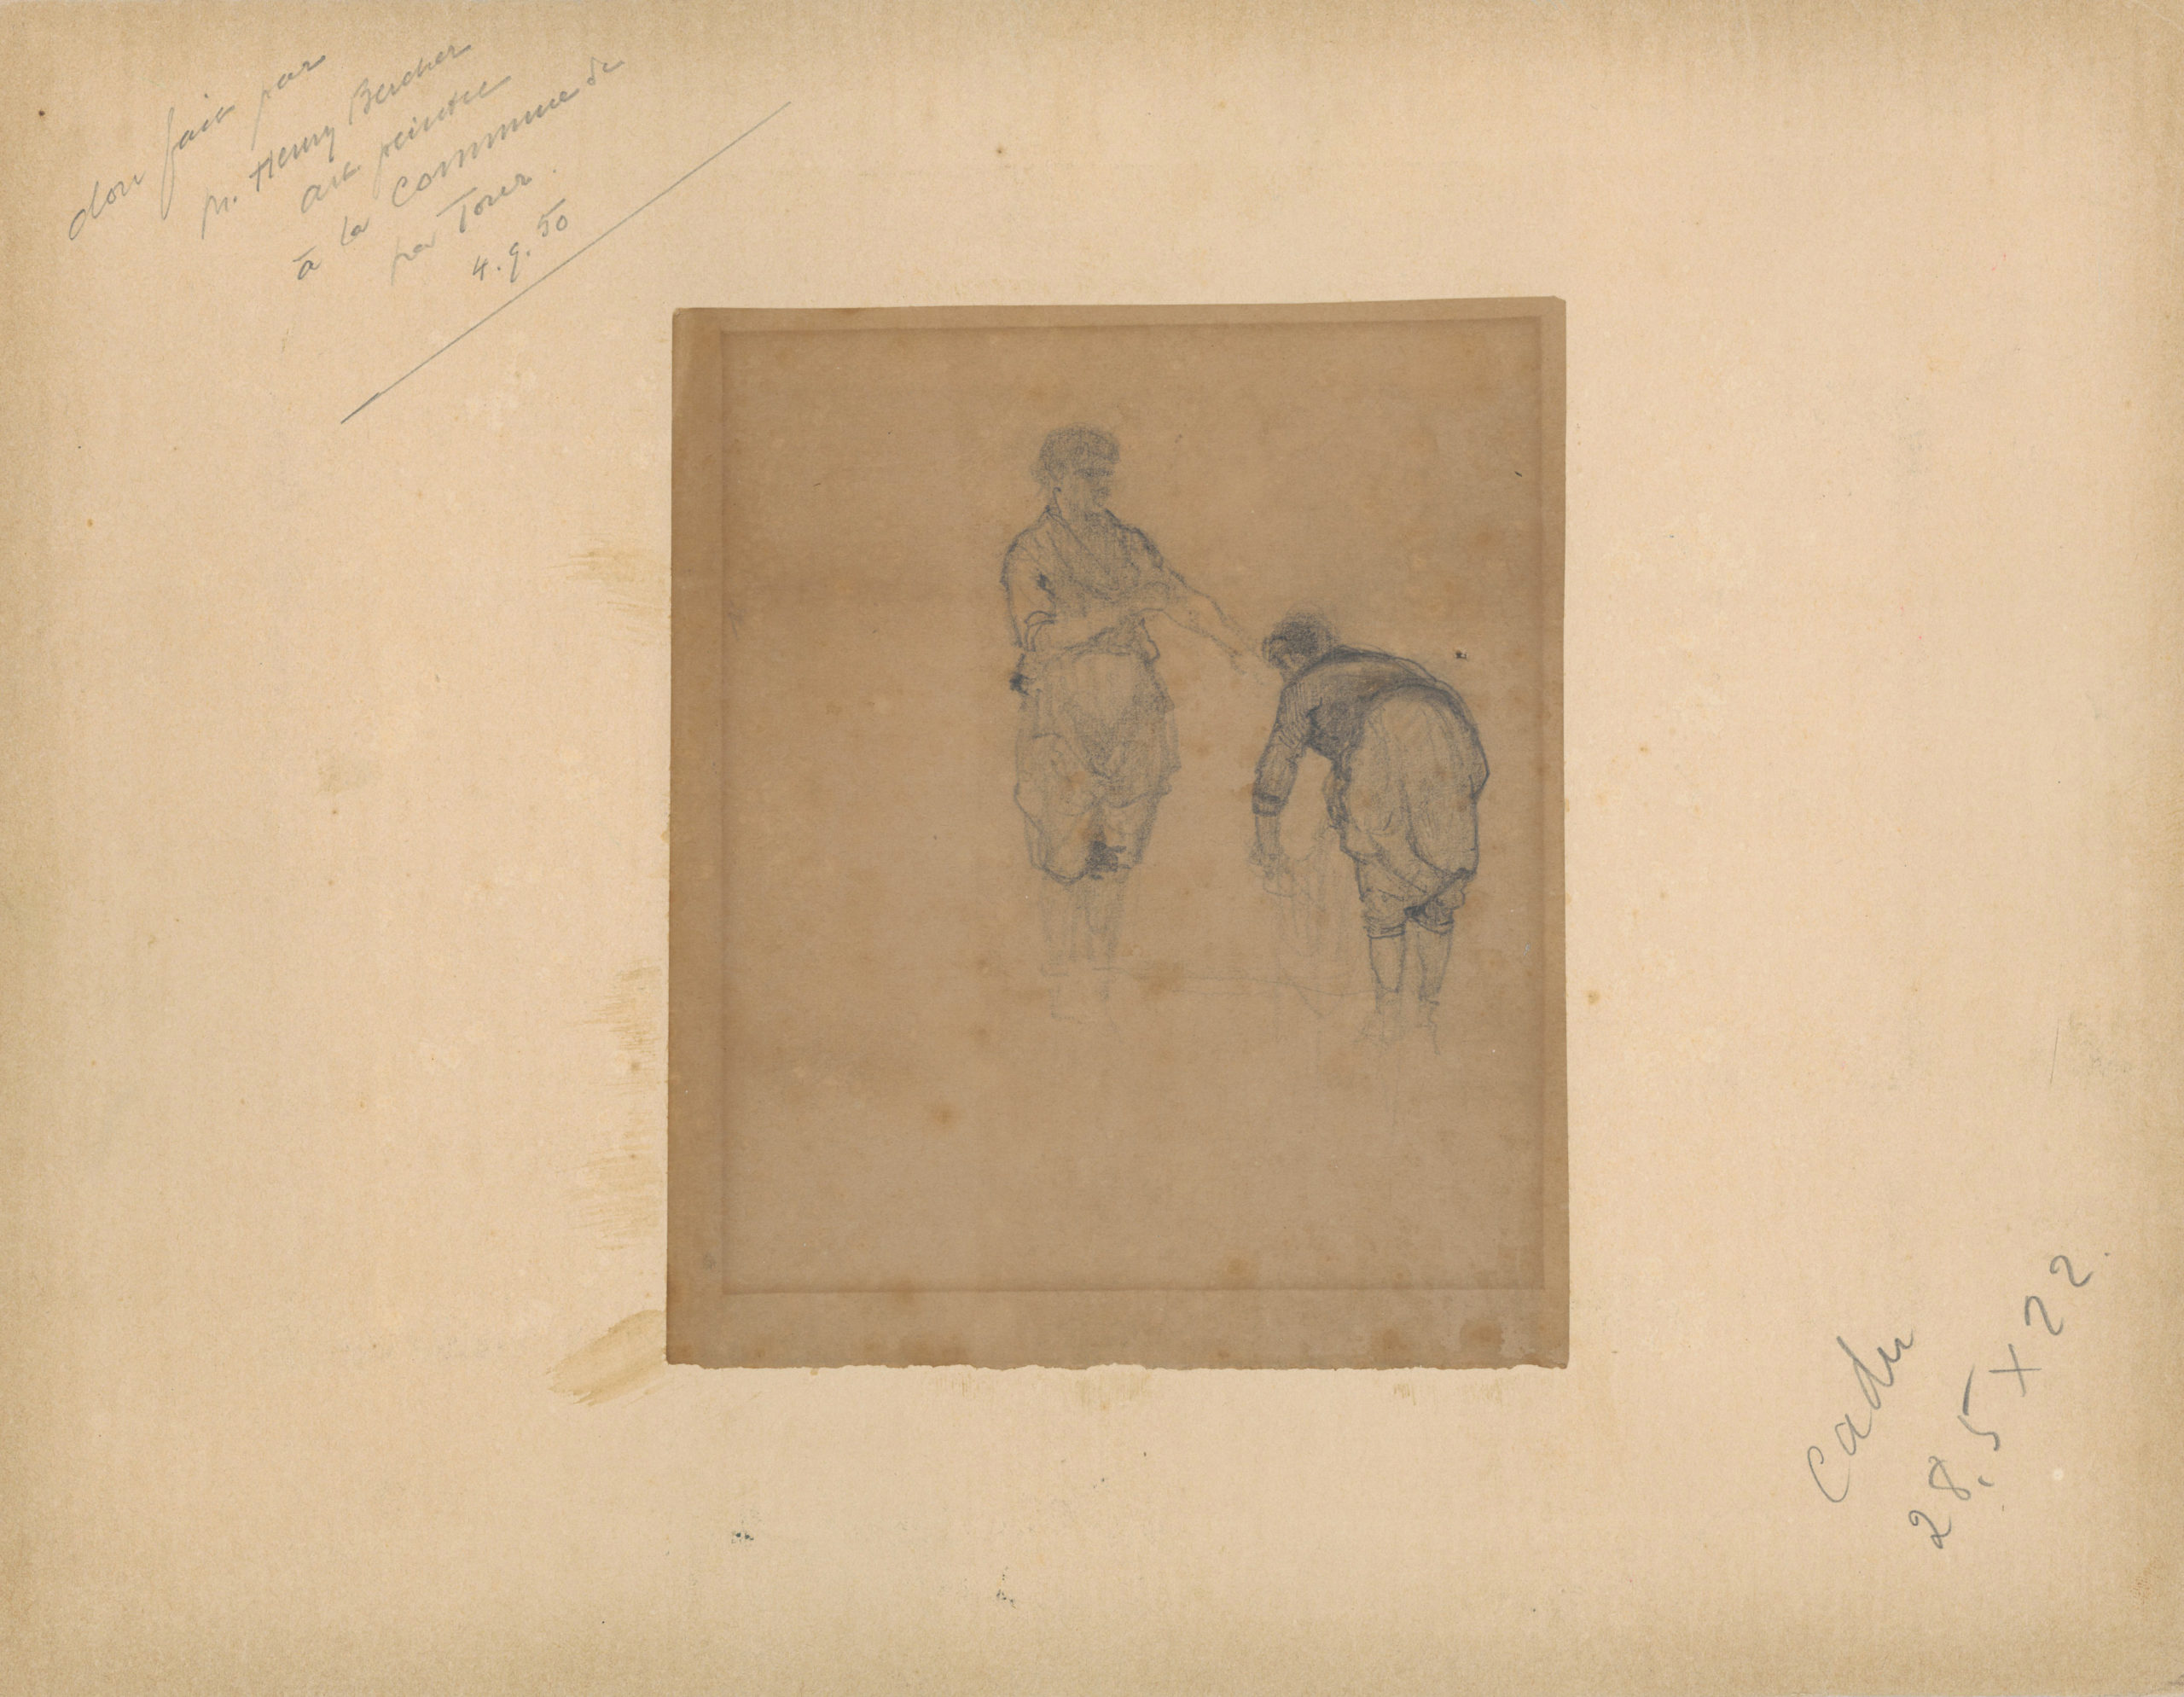 Photograph given to François Bocion by Gustave Courbet - Verso, sketch of two washers by François Bocion.